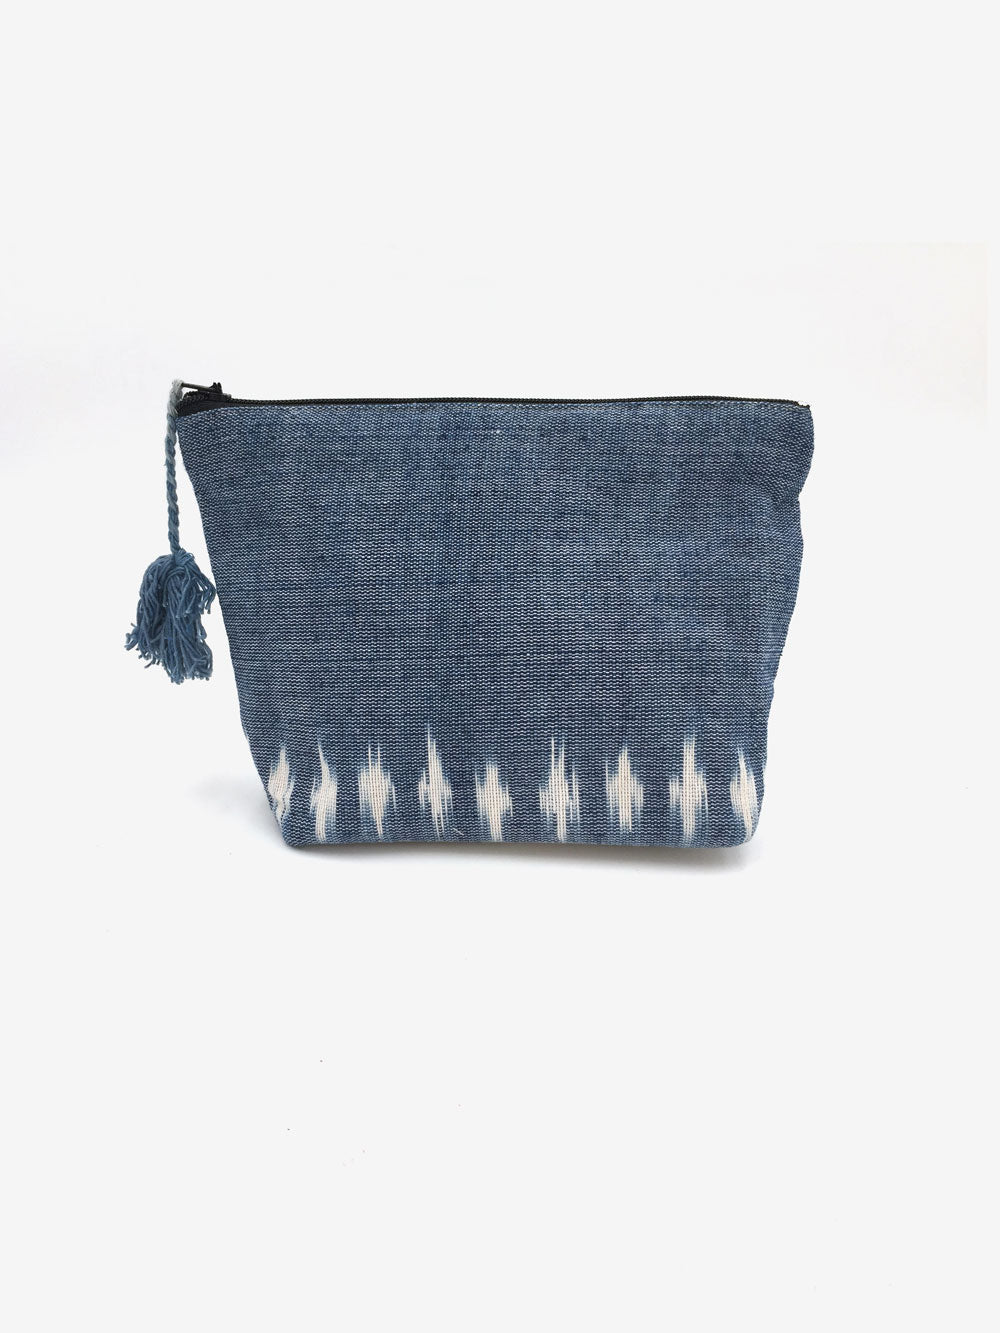 Handwoven Pouch in Cobalt Blue